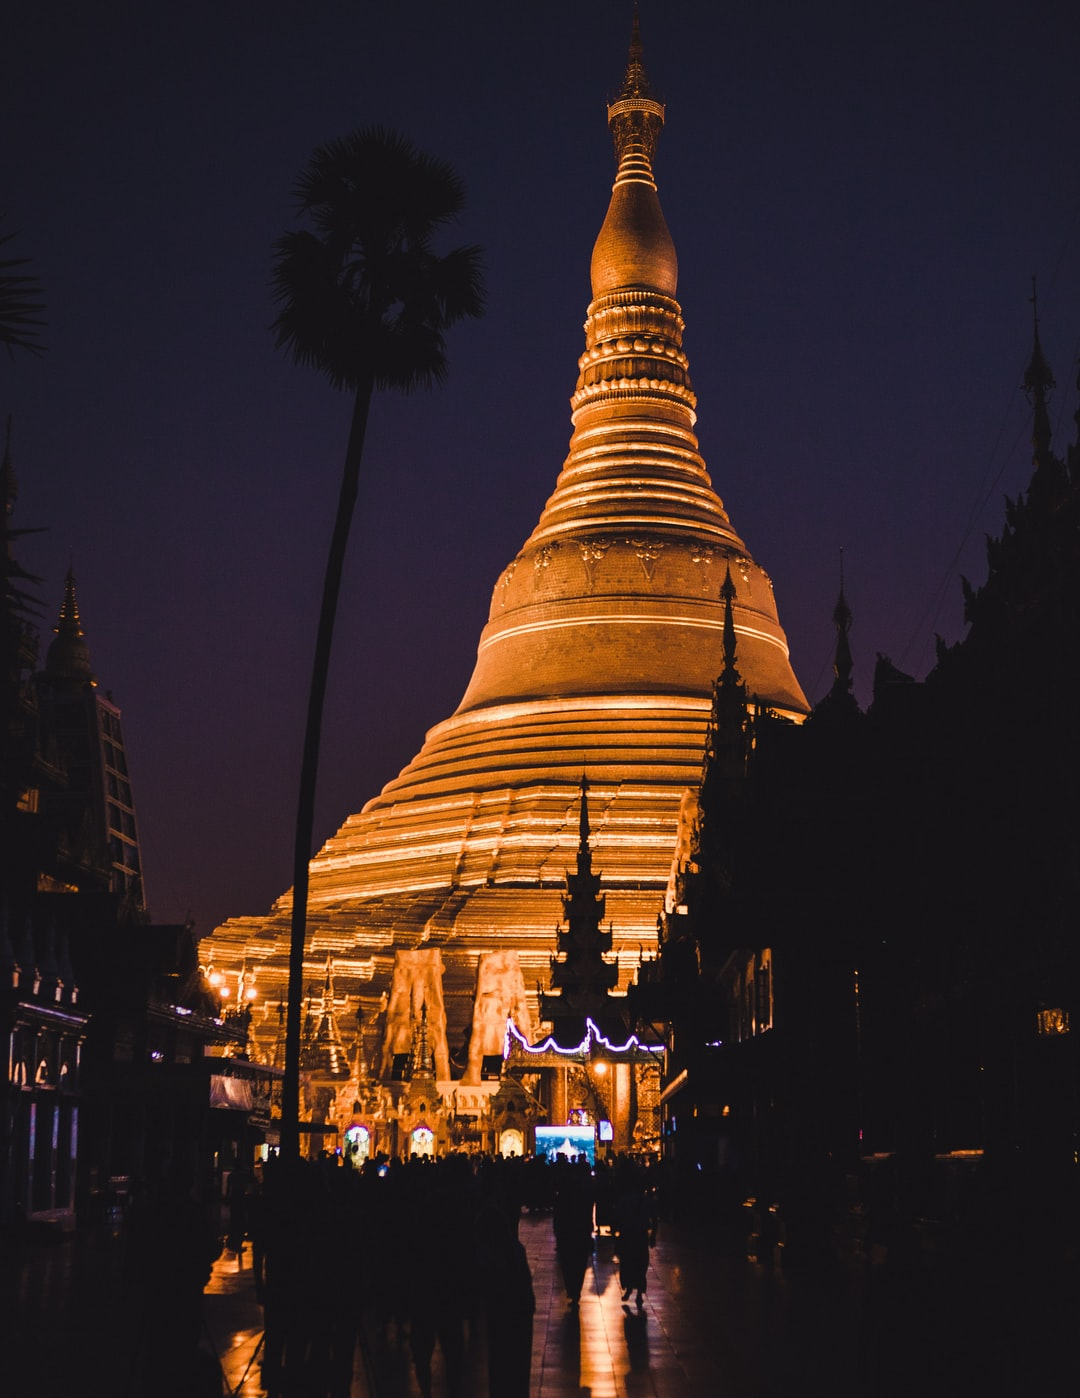 I have heard of the name Shwedagon for the longest time and I know it's literally a big thing in Myanmar but when I see it with my own eyes, it's way much bigger than I imagined. Gigantic and beautifully-designed. More photos and travelogue at roadtripwithraj.com